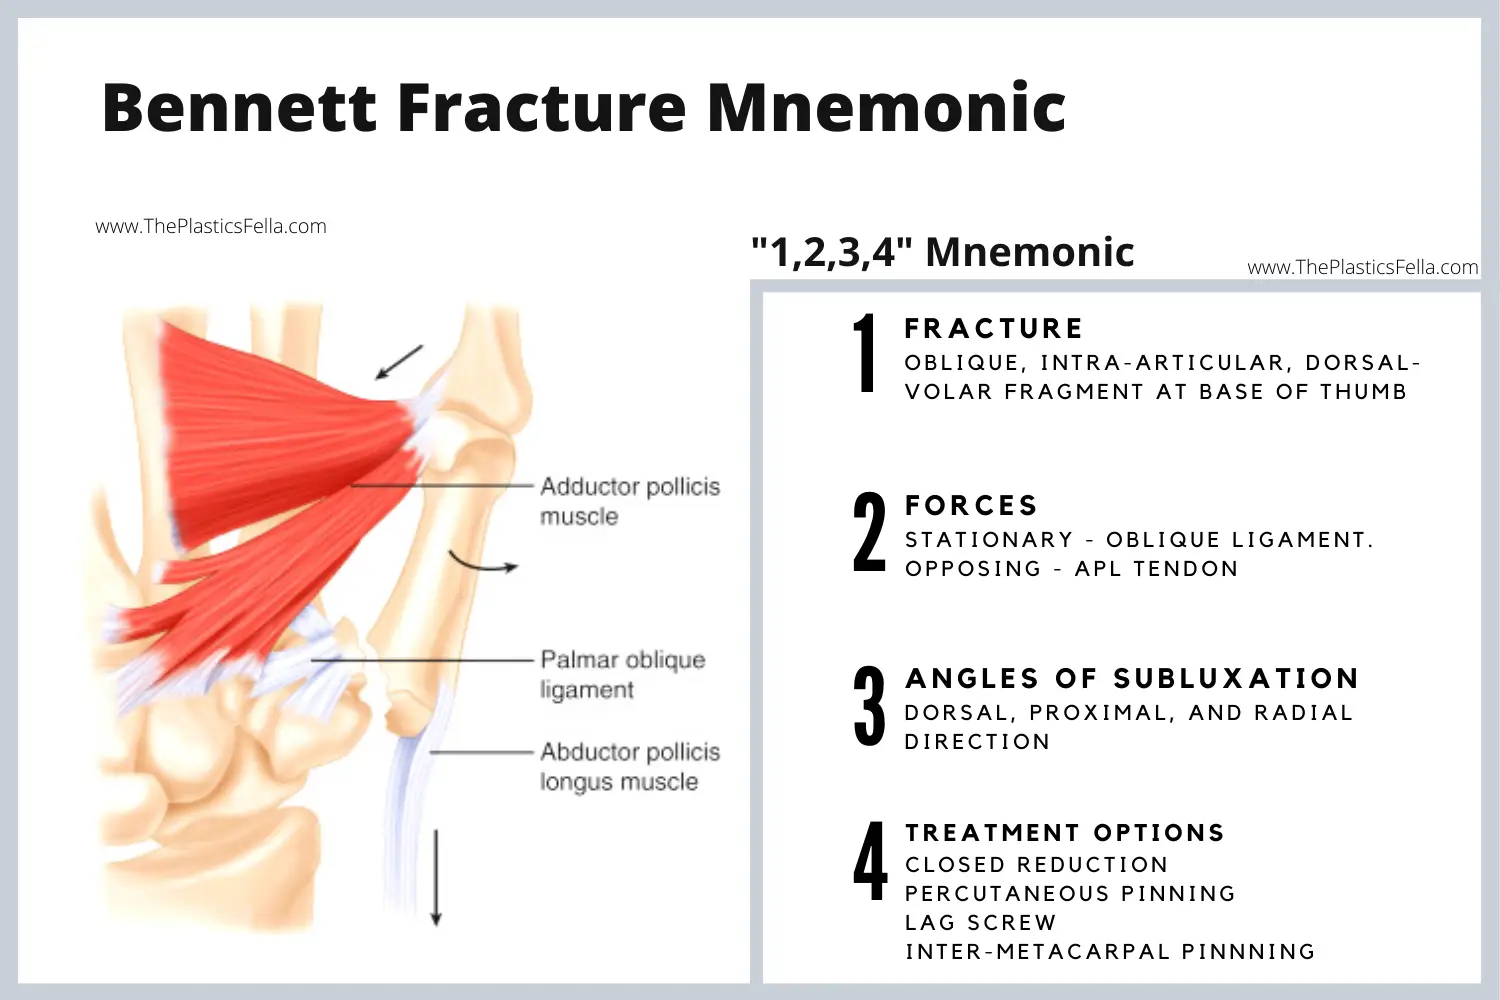 Bennet Fracture Mnemonic – 1 Fracture, 2 Forces, 3 Angles, 4 Treatments